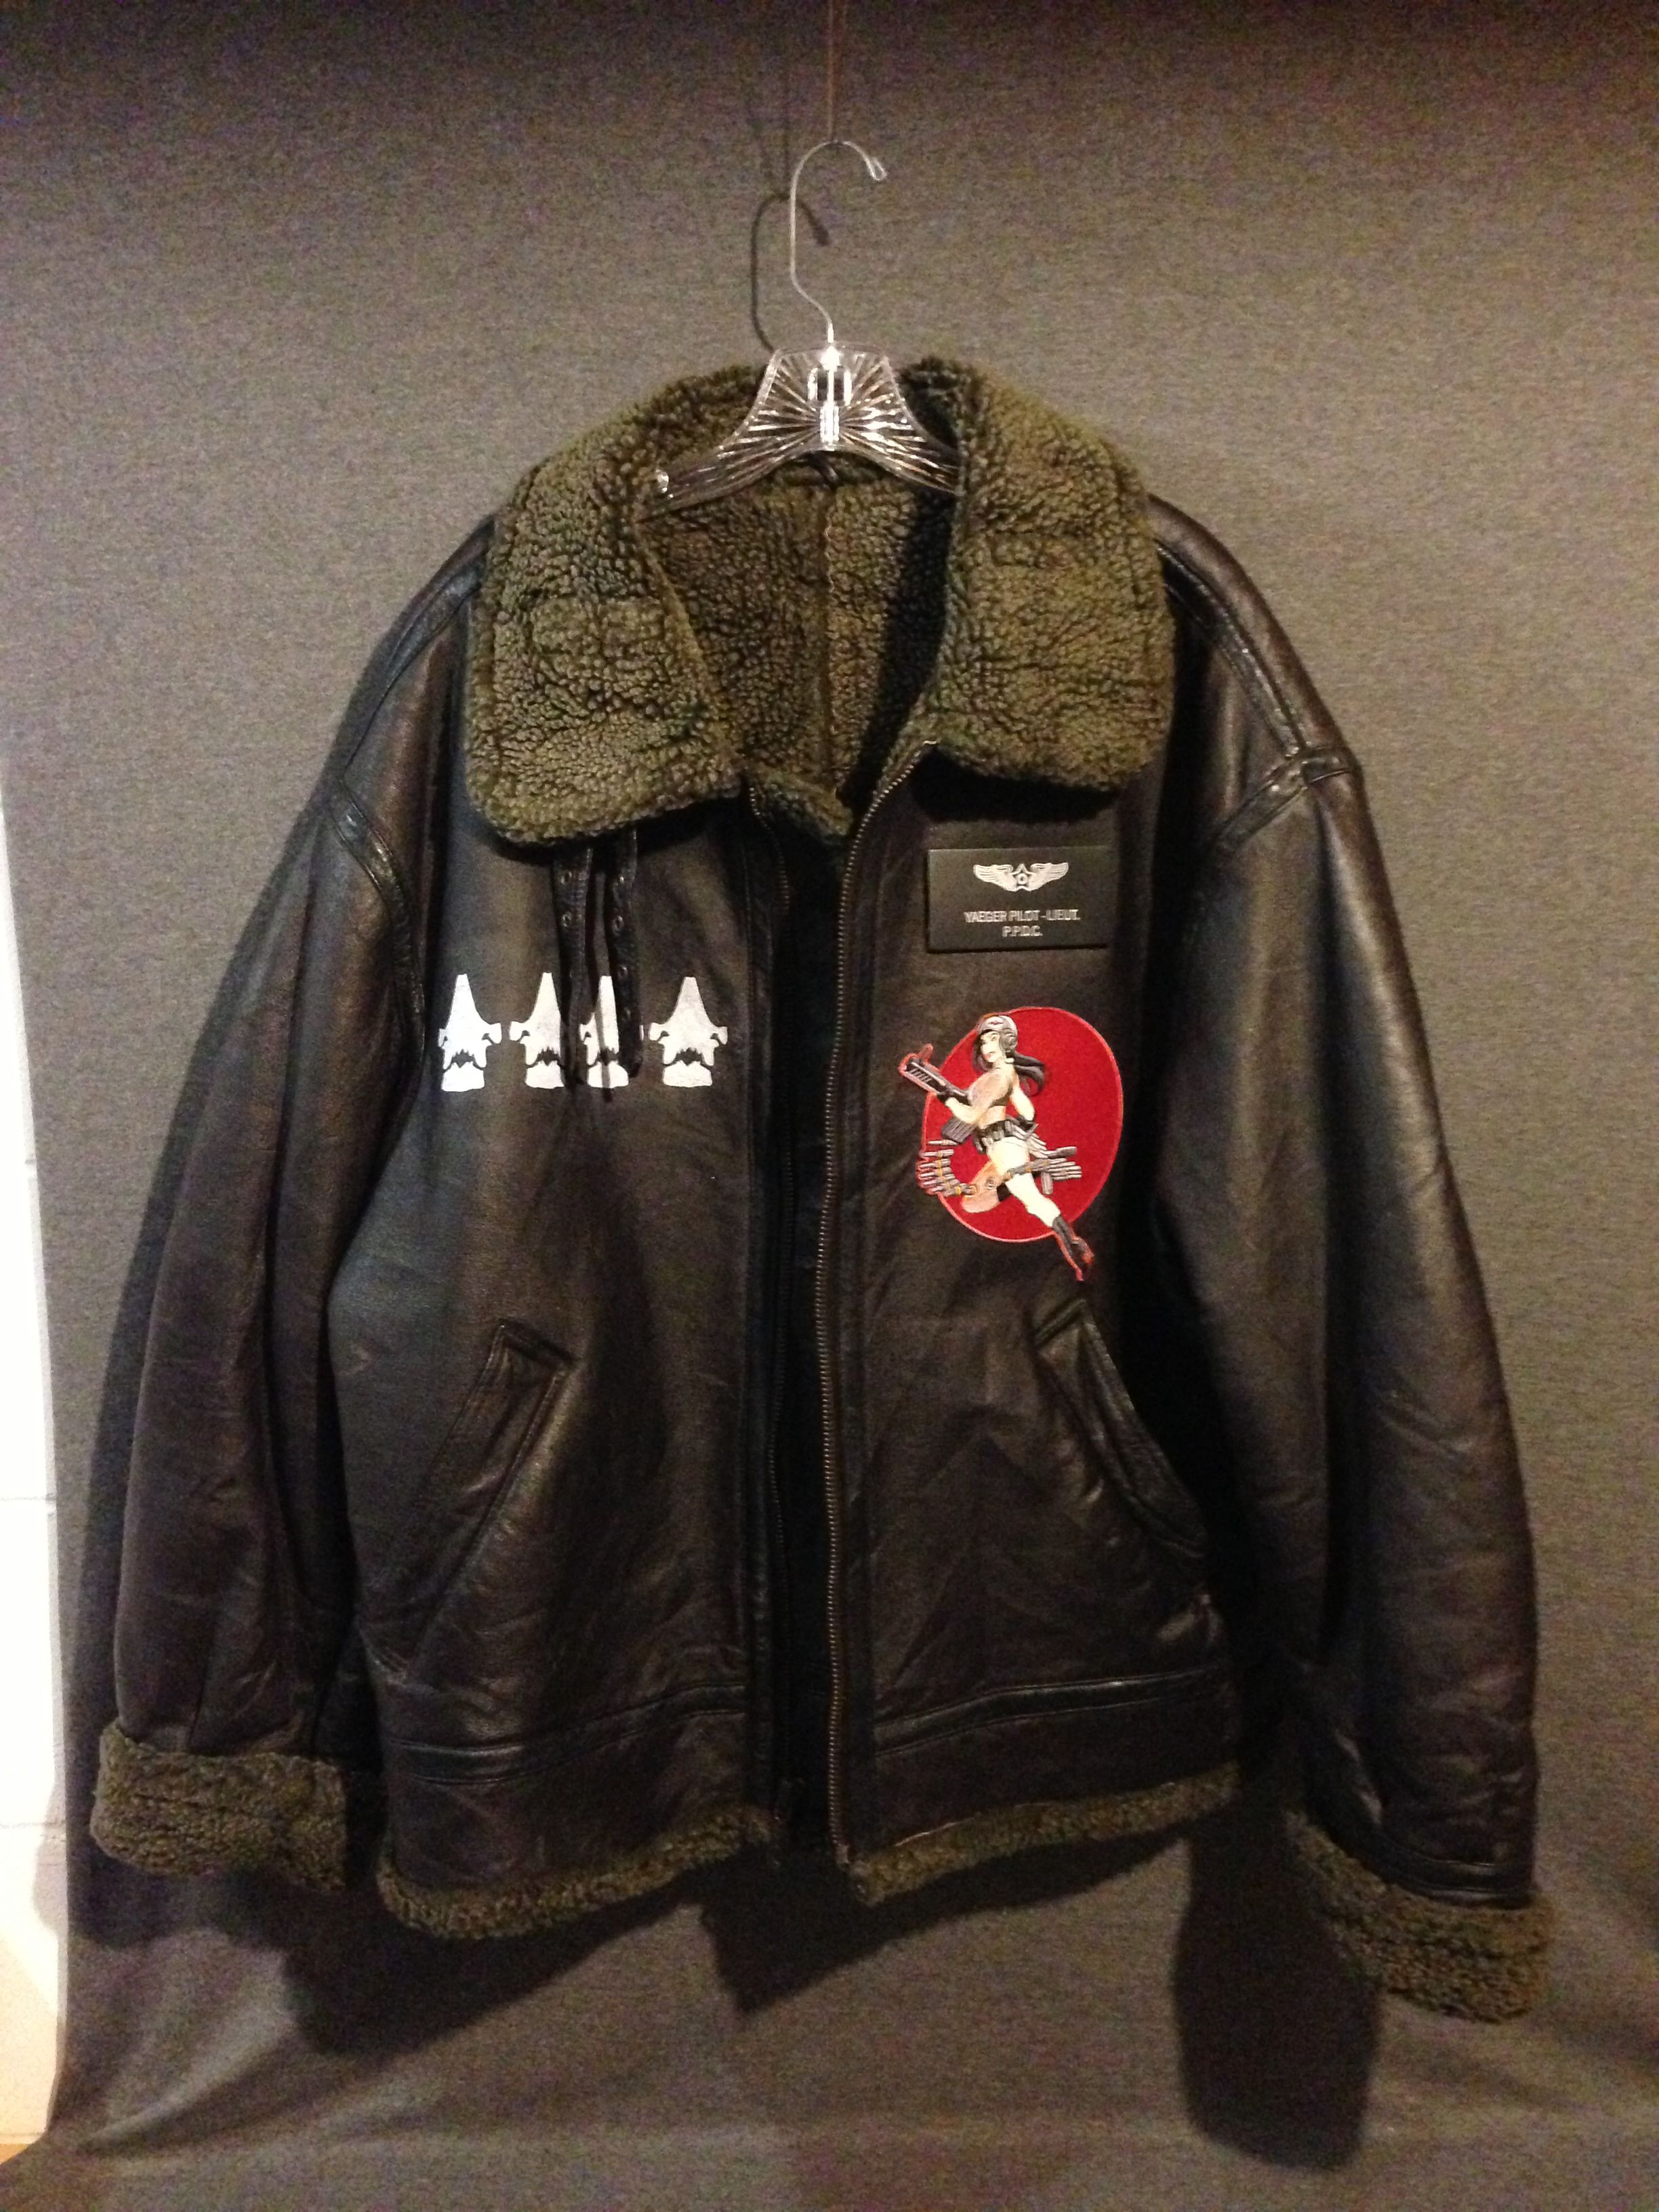 Pacific Rim Ranger Bomber Jacket   Things to Wear   Jackets, Bomber ... e3ad1b94bc